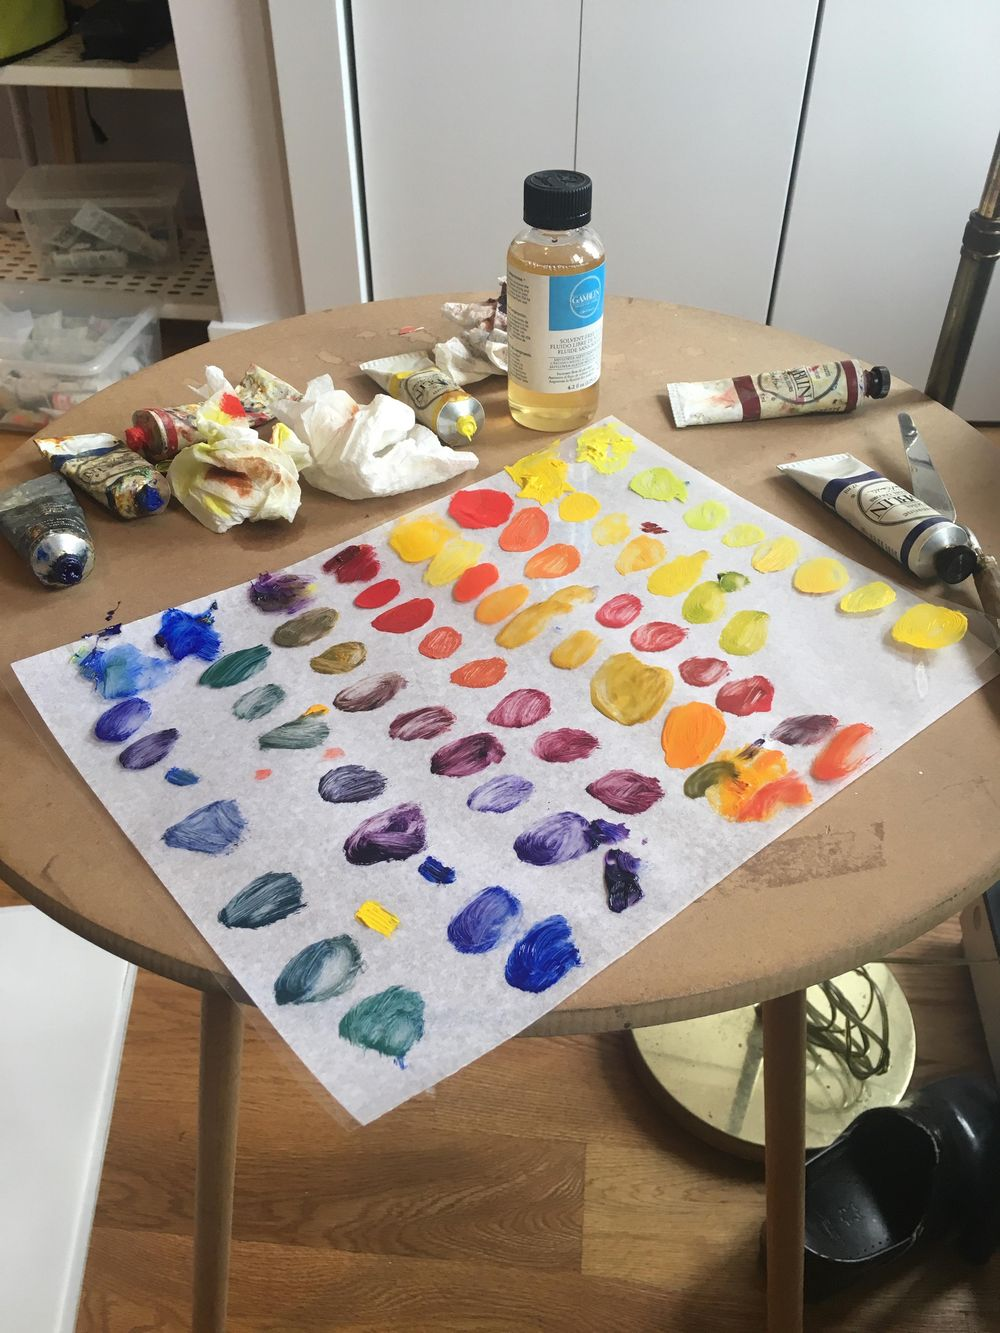 Mixing colors - image 1 - student project